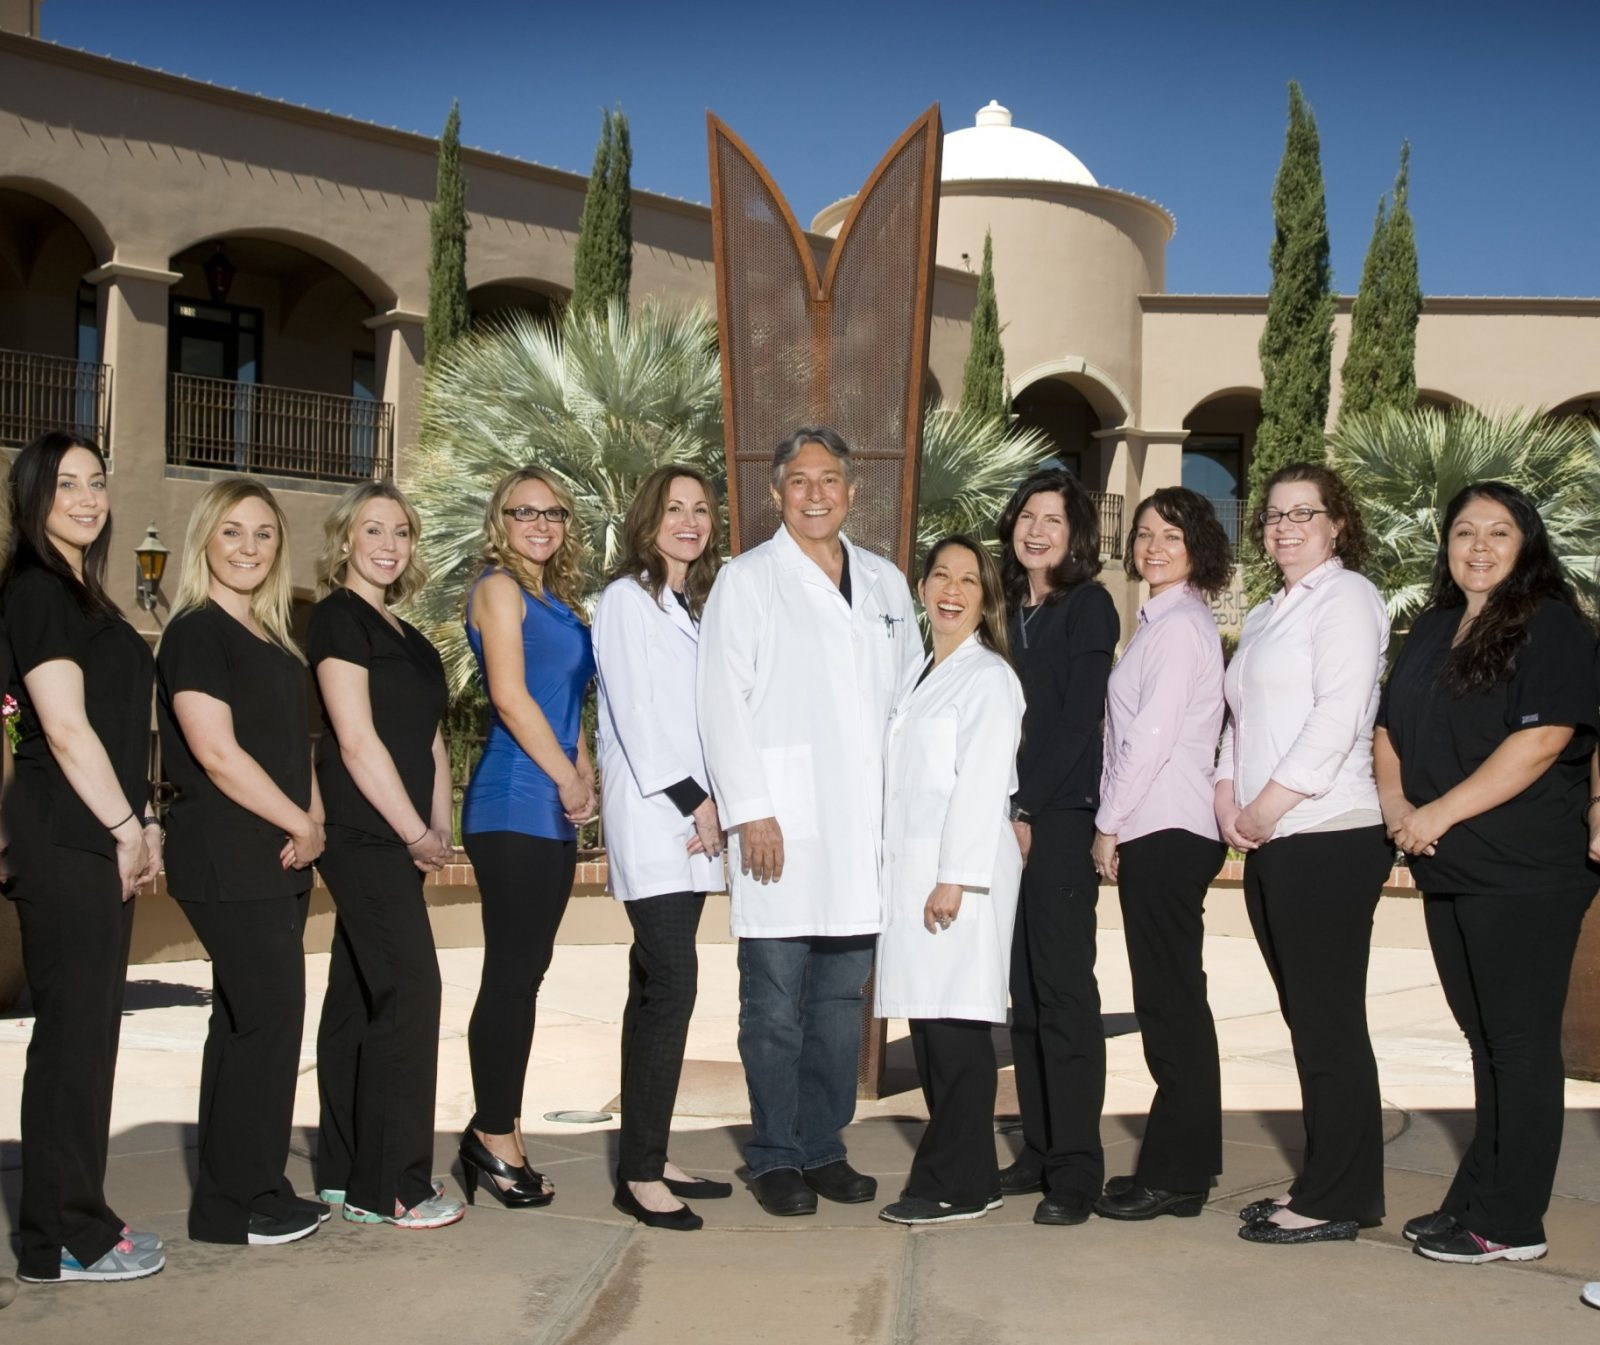 The experienced, friendly staff at Greenspring Medspa, Tucson